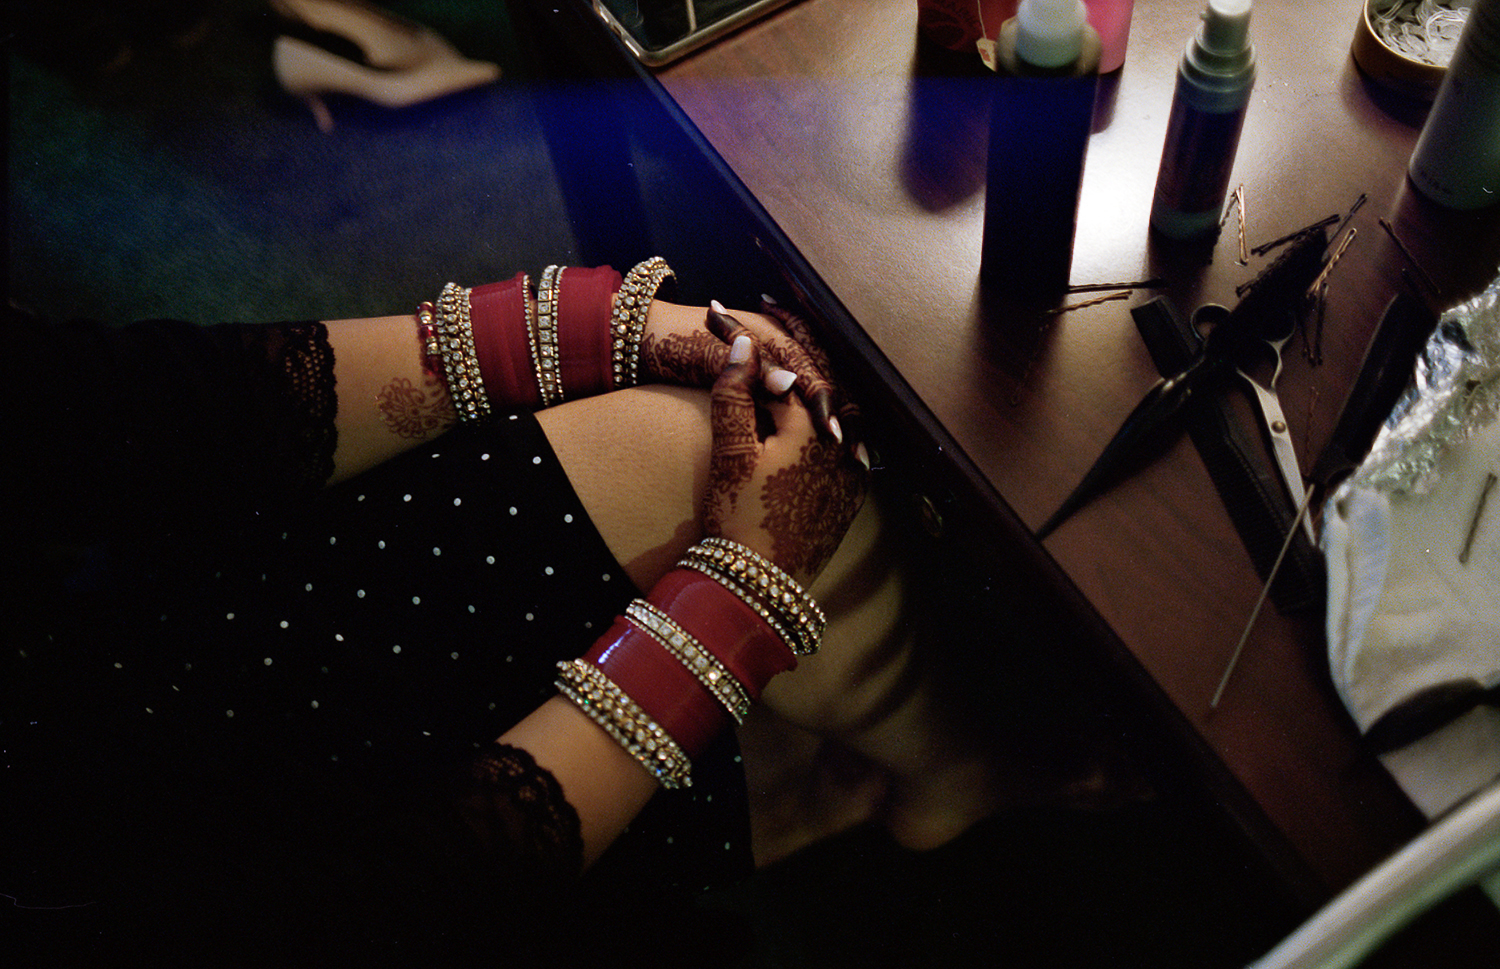 Best-Analog-Film-Wedding-Photographers-in-Toronto-3B-Photography-Brian-B-Bettencourt-Leica-M4P-Kodak-Film-Portra-400-Bride-Getting-Ready-Mixed-Culture-Wedding-Indian-Bride-Details.jpg